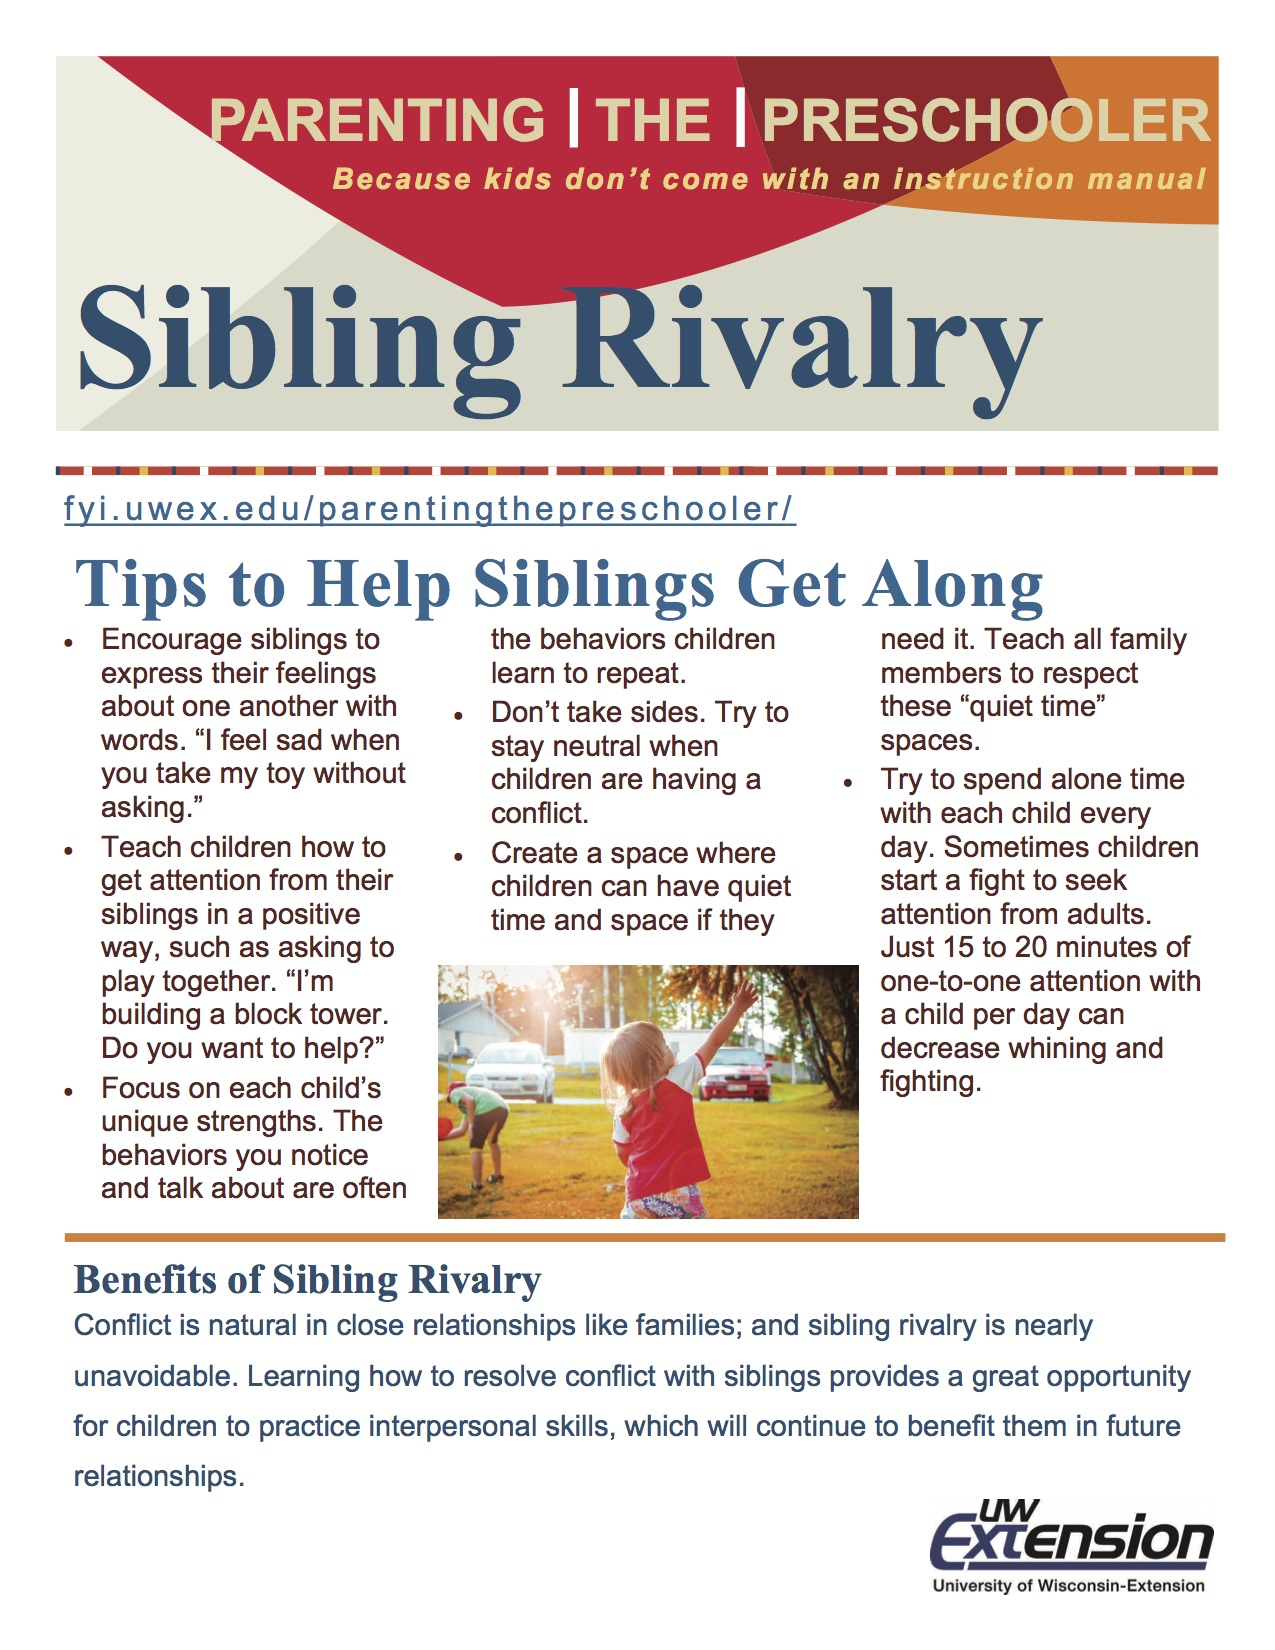 Sibling Rivalry Parenting The Preschooler